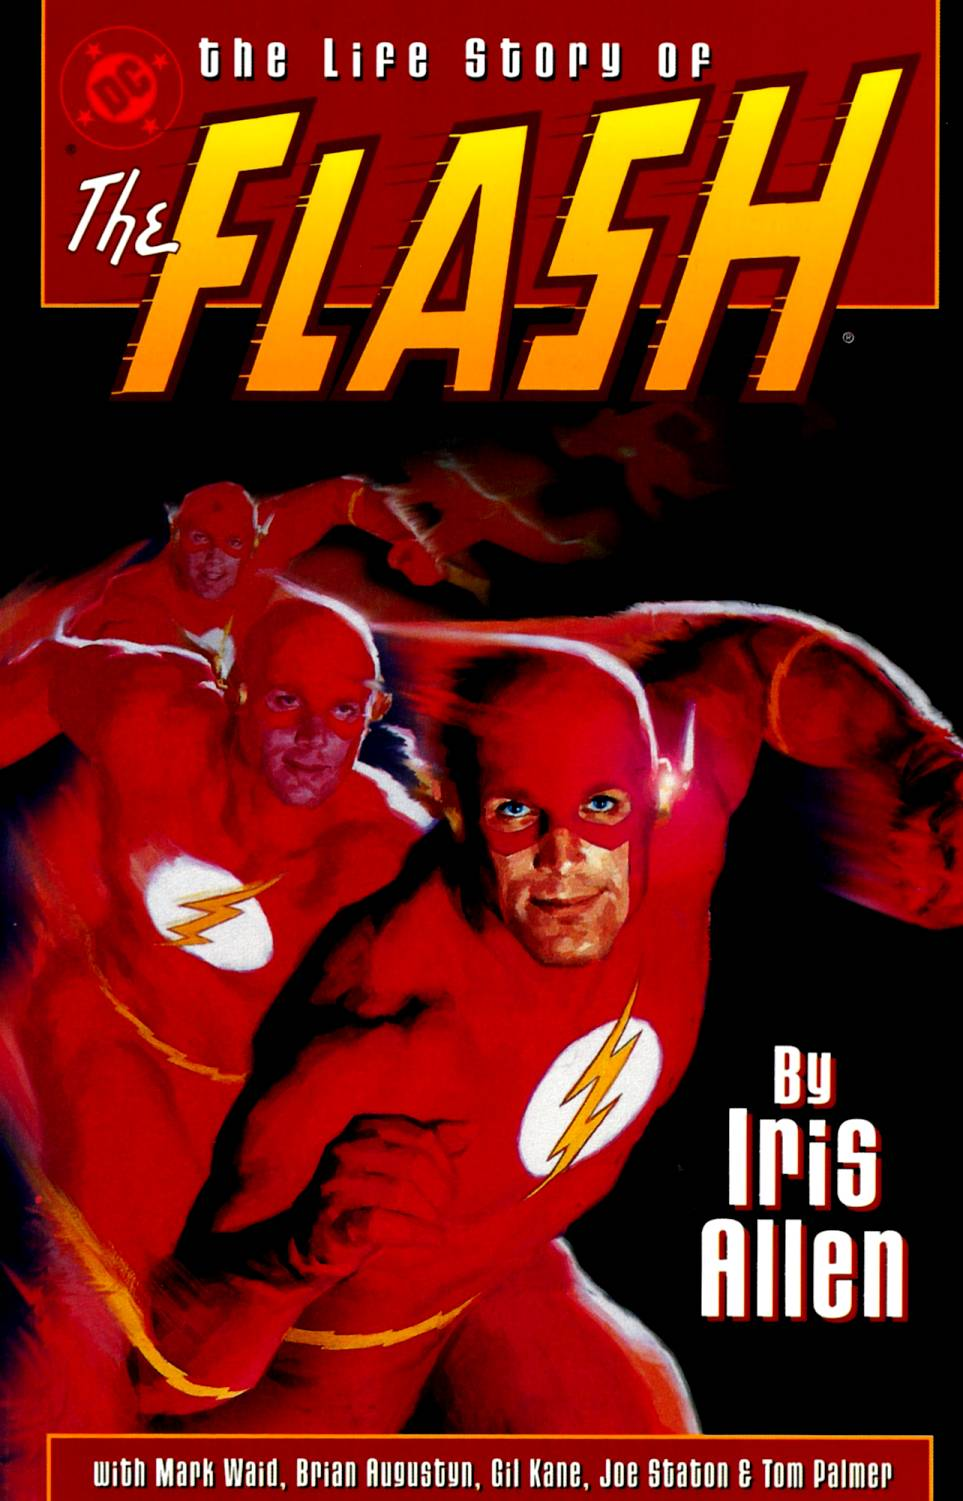 Read online The Life Story of the Flash comic -  Issue # Full - 1